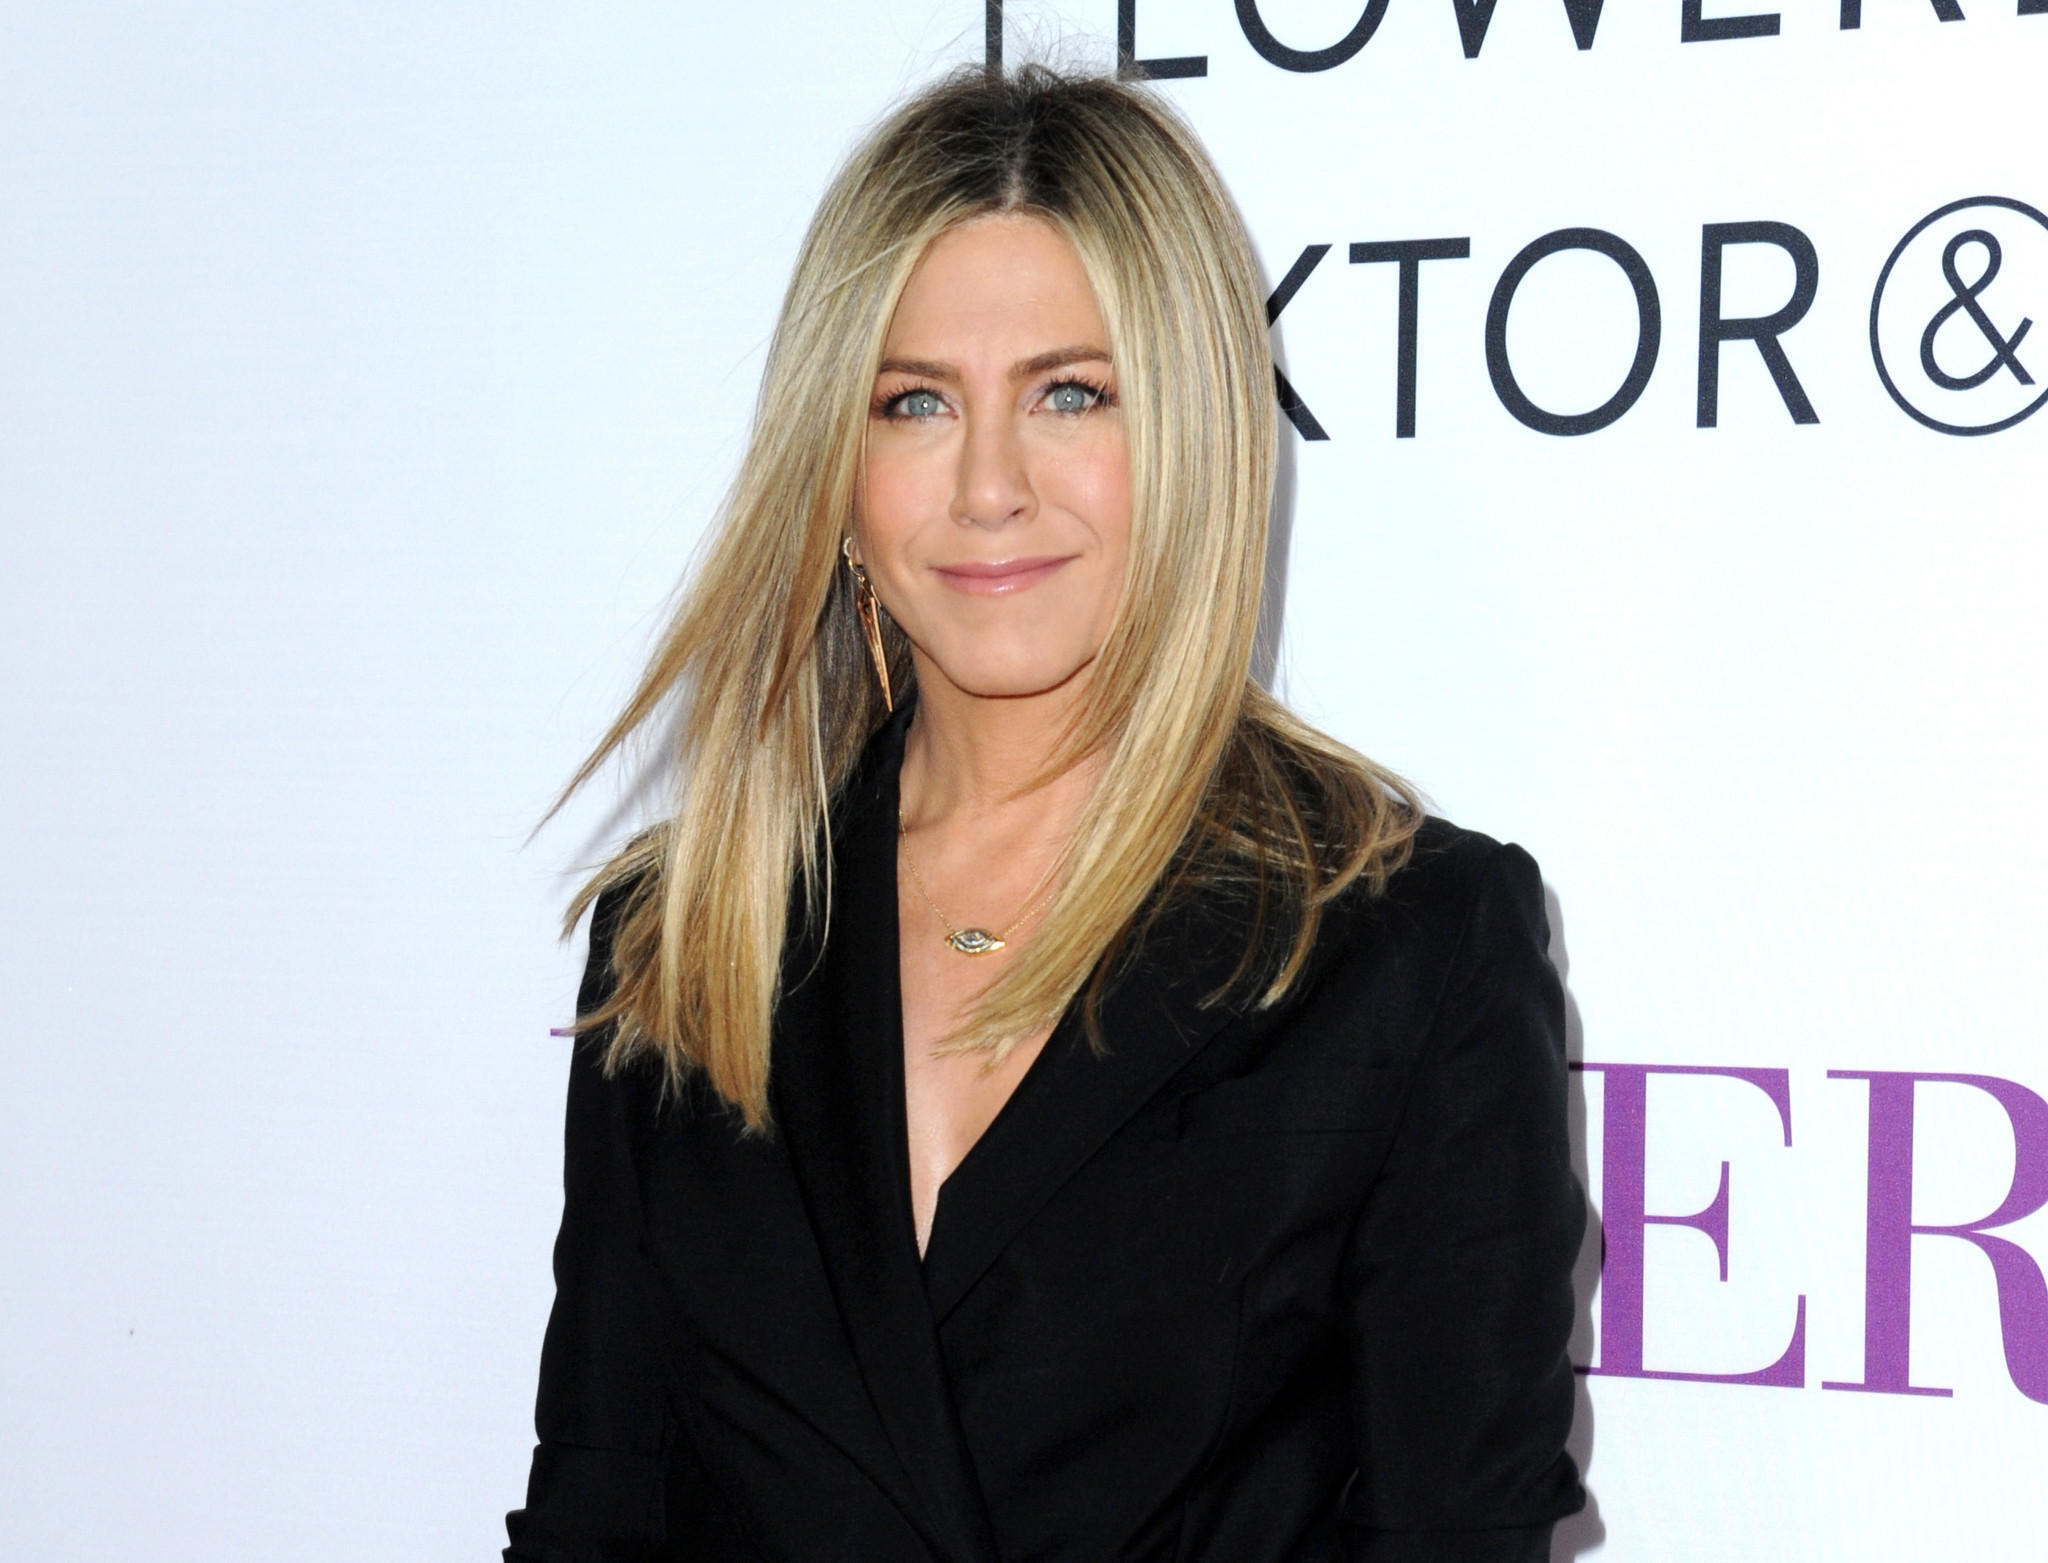 jennifer aniston takes on the tabloids in scathing essay about jennifer aniston takes on the tabloids in scathing essay about body shaming and sexism la times